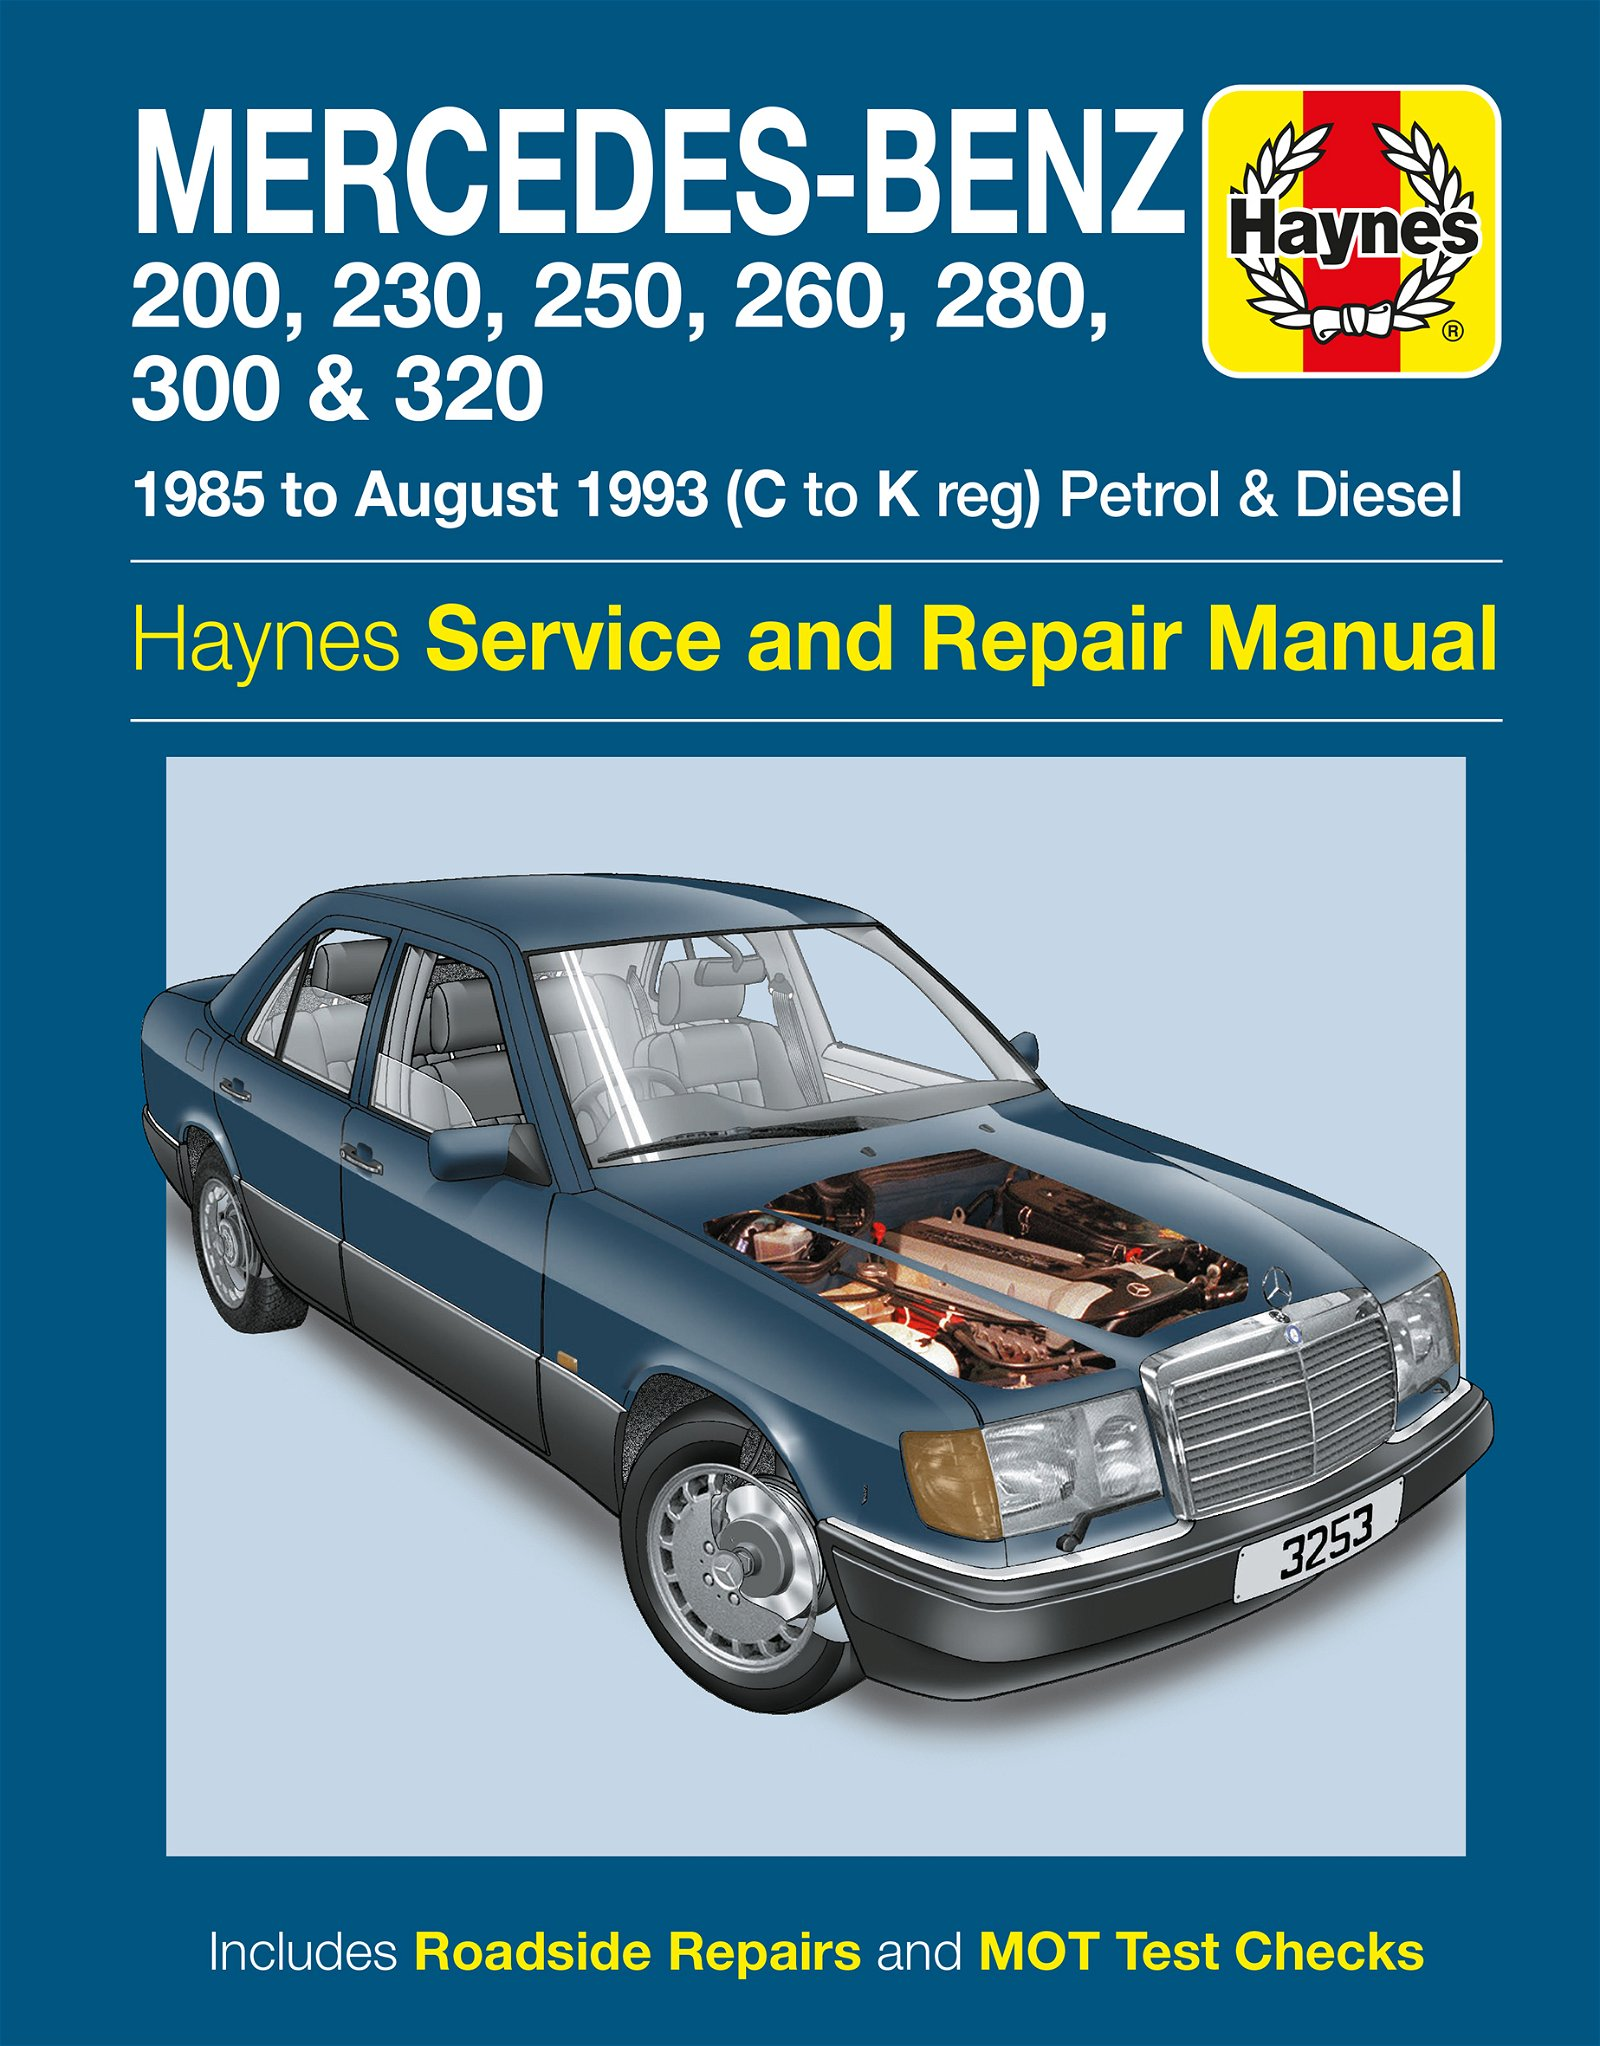 [Manuel UK en Anglais] Mercedes-Benz 124 Series Petrol & Diesel  (85 - Aug 93)  C to K